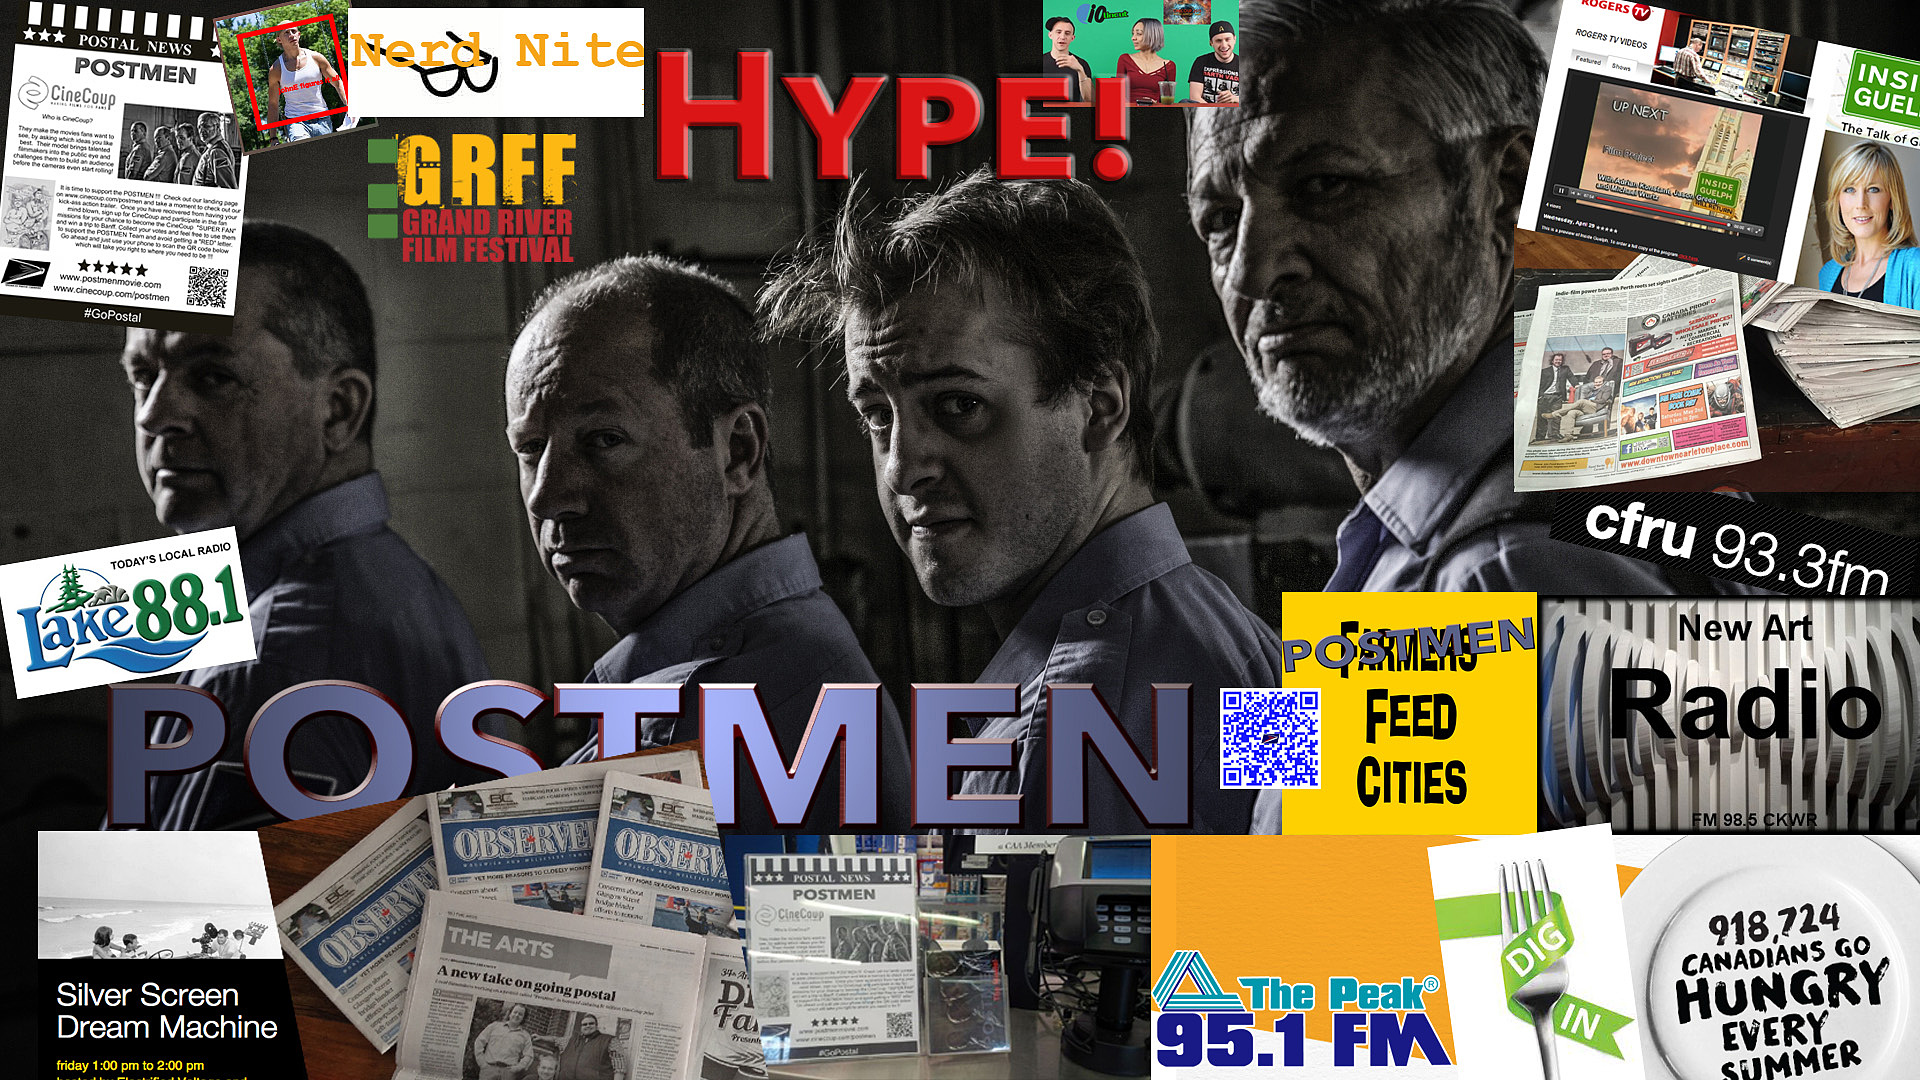 CineCoup - Postmen Mission 7: Hype